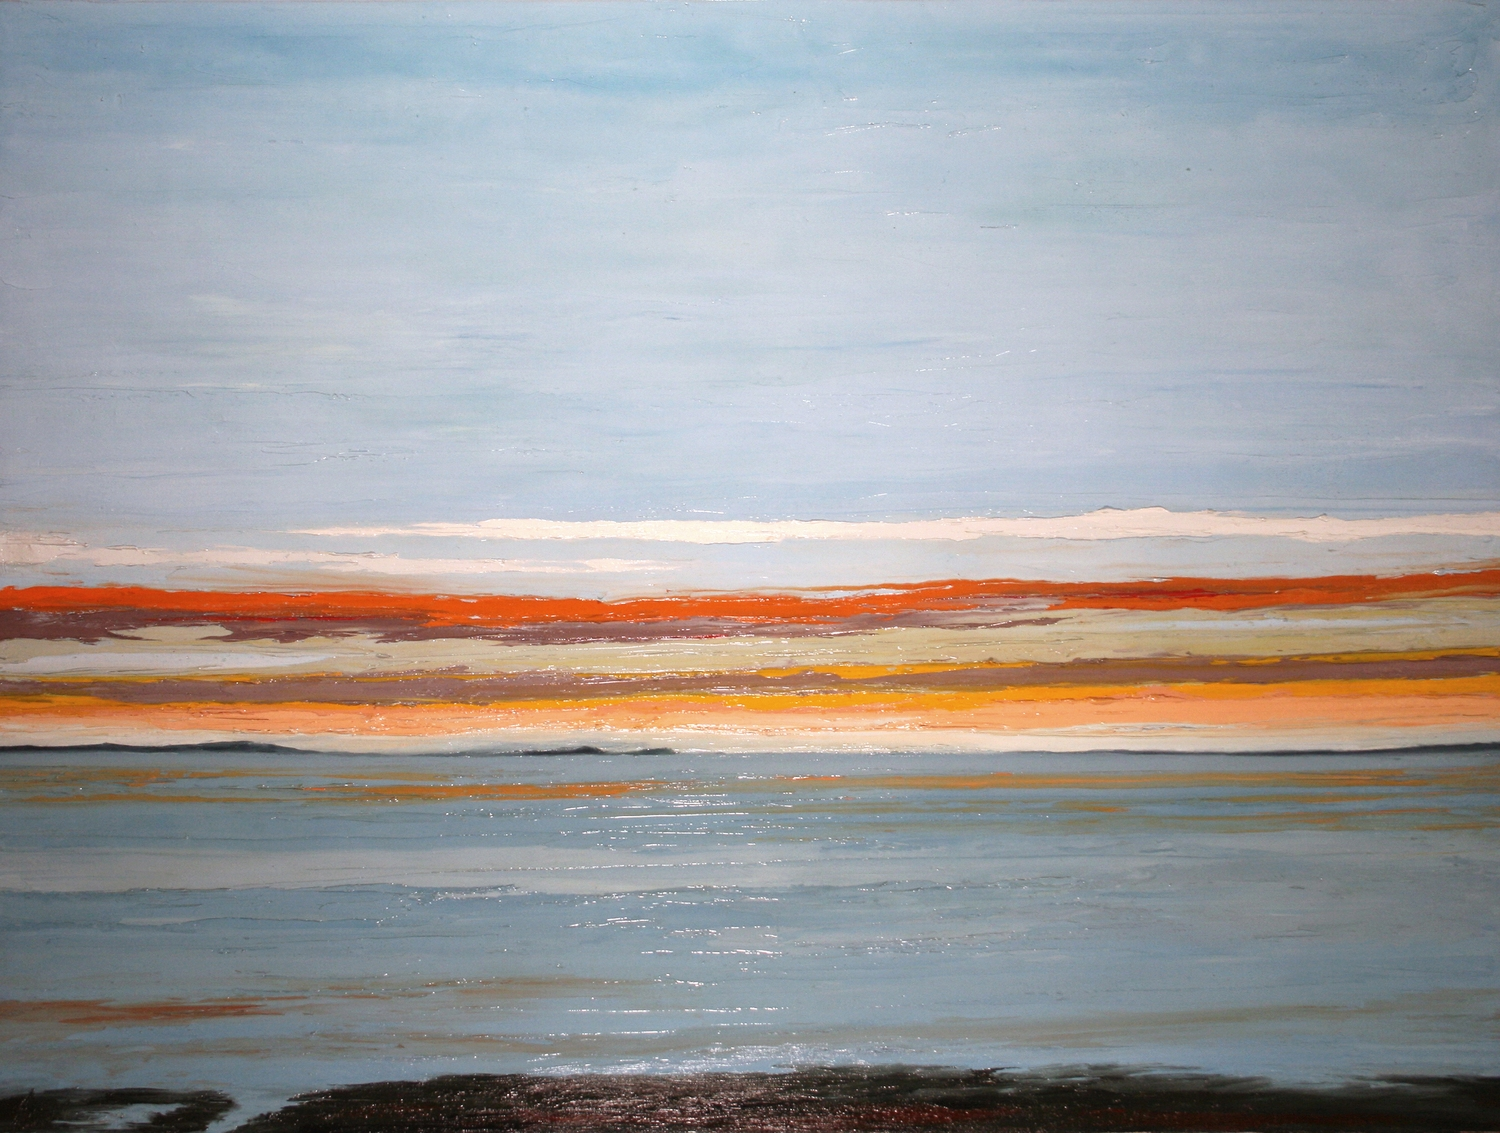 Cuhna View, Plymouth, MA, oil on canvas, 36 by 48 inches, 2014